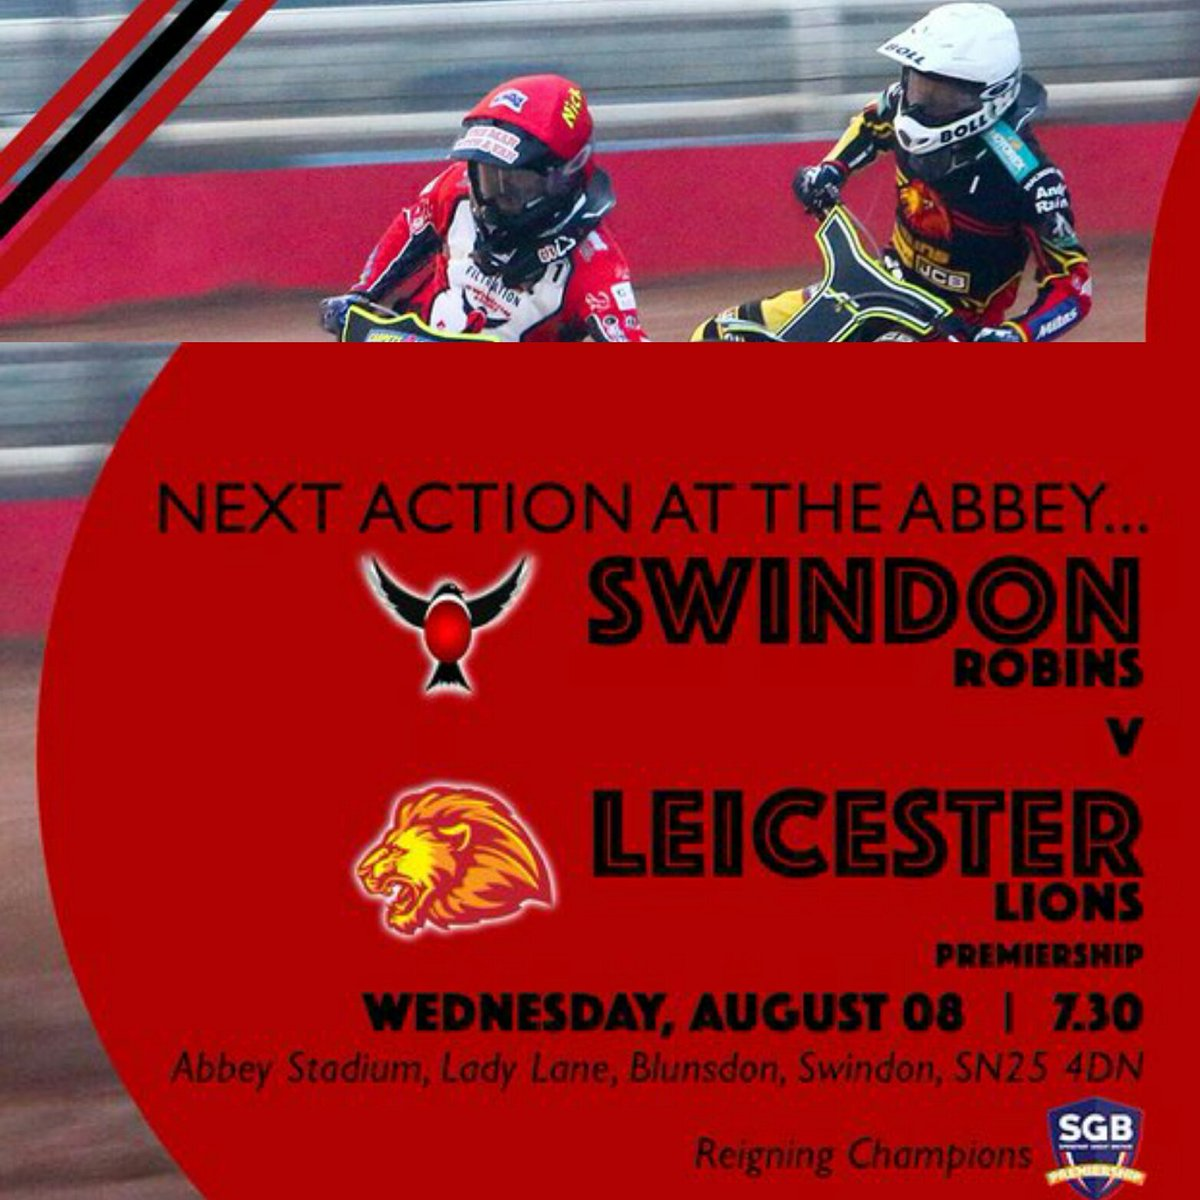 🏁🔝 🏁 THE PUSH FOR THE PLAY OFFS 🔝🏁🔝 ➡ Weekly Paying Fans ➡ RT & WIN 2 TICKETS TO THIS FIXTURE 🔴⚠ ➡ Season Ticket Holders ➡ SHARE & WIN TO WATCH TWO RACES FROM THE CENTRE GREEN 🔴⚠ #swindon #speedway #win #tickets #leicester